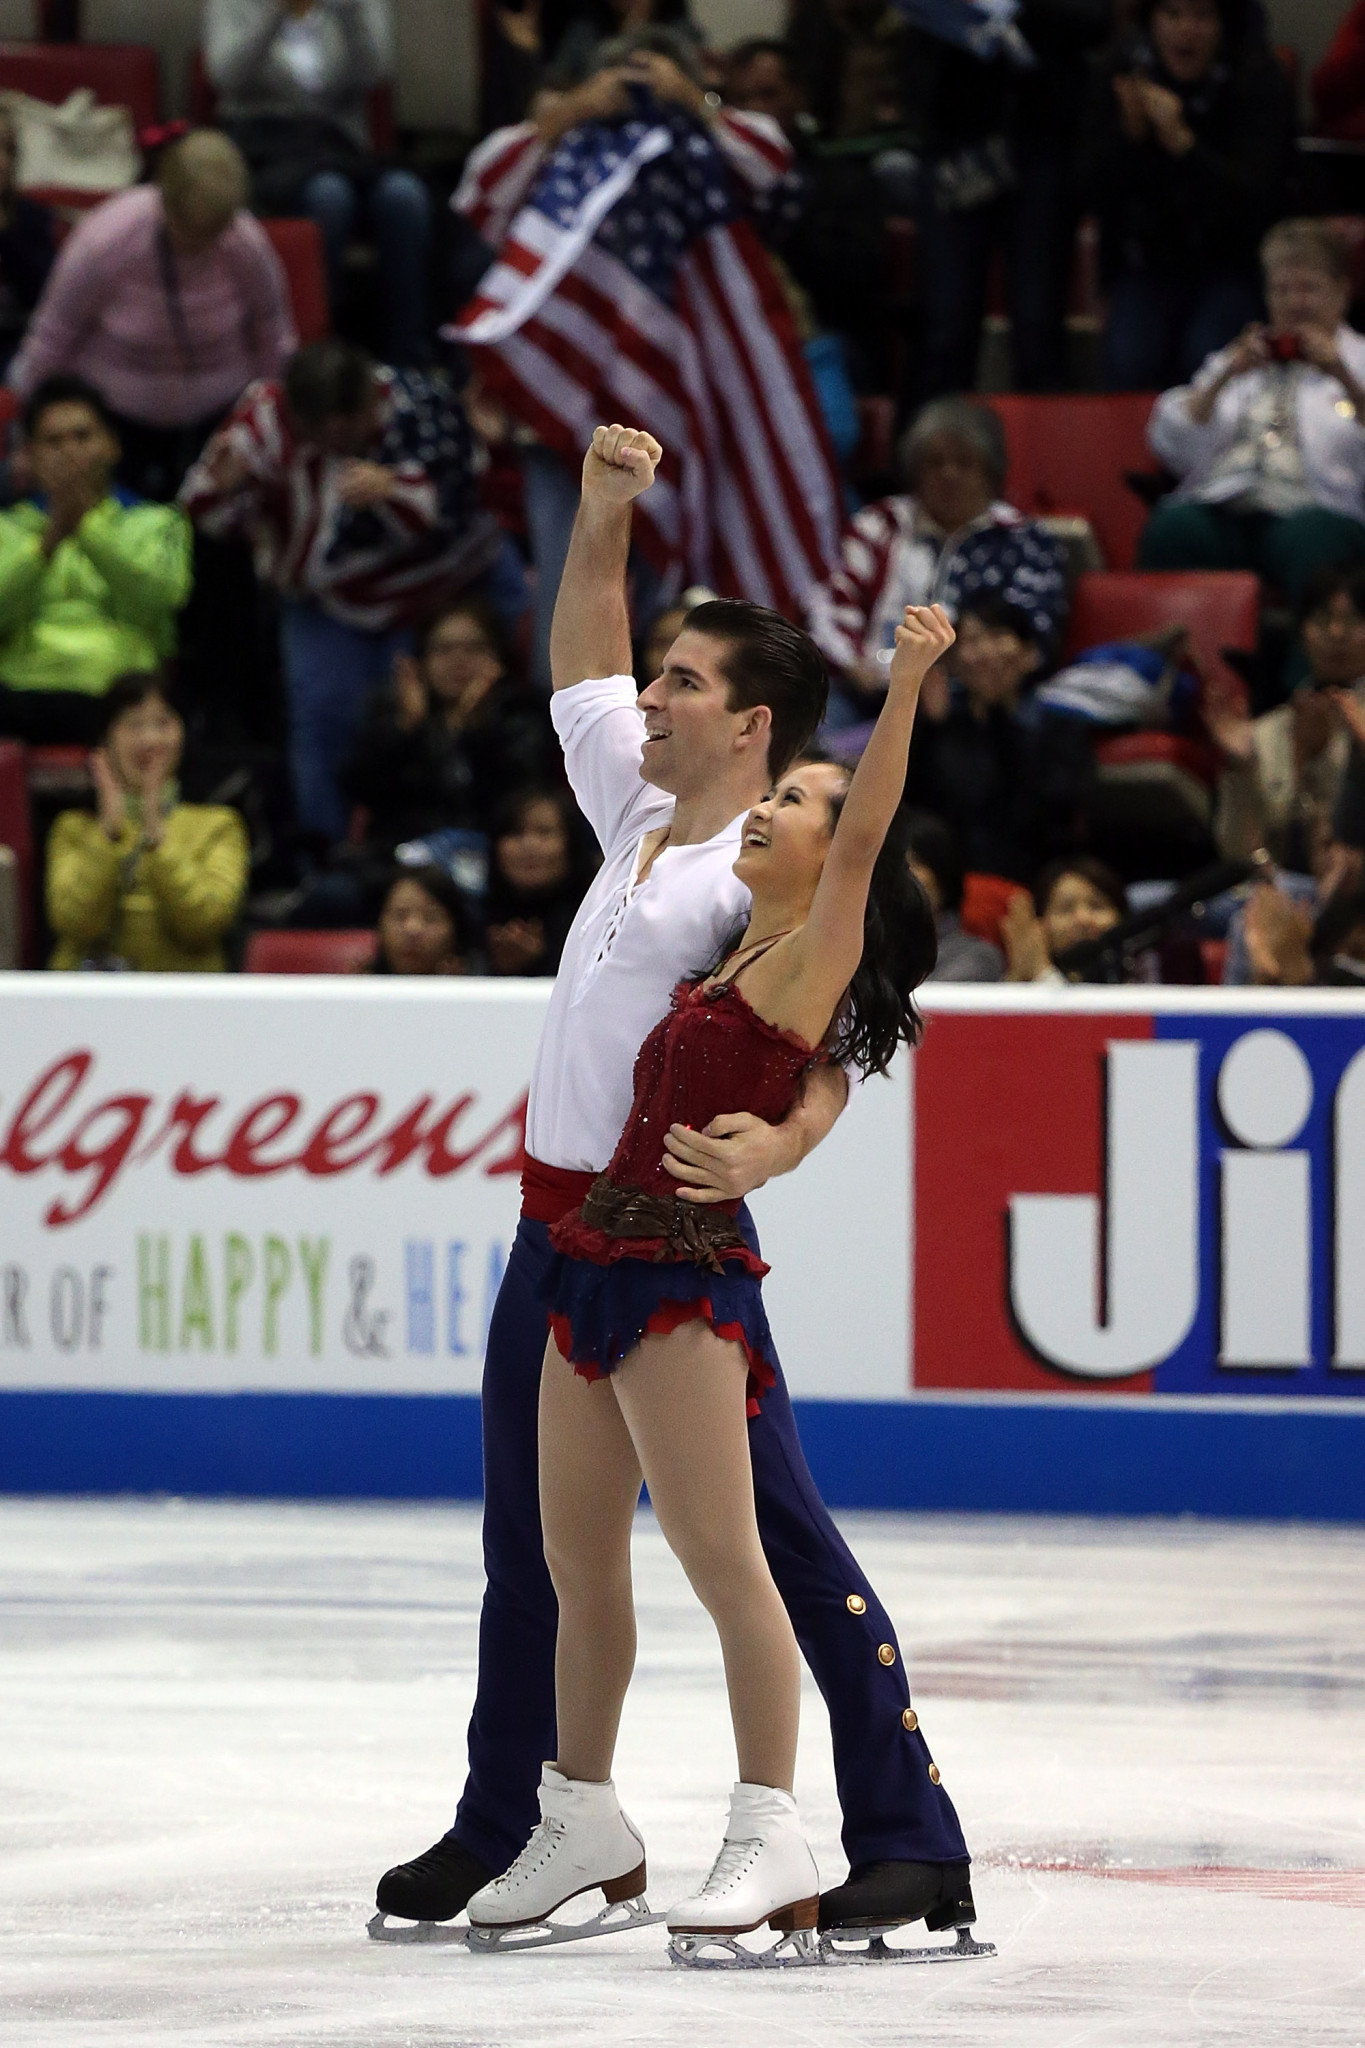 Detroit is no stranger to major figure skating events ©Getty Images